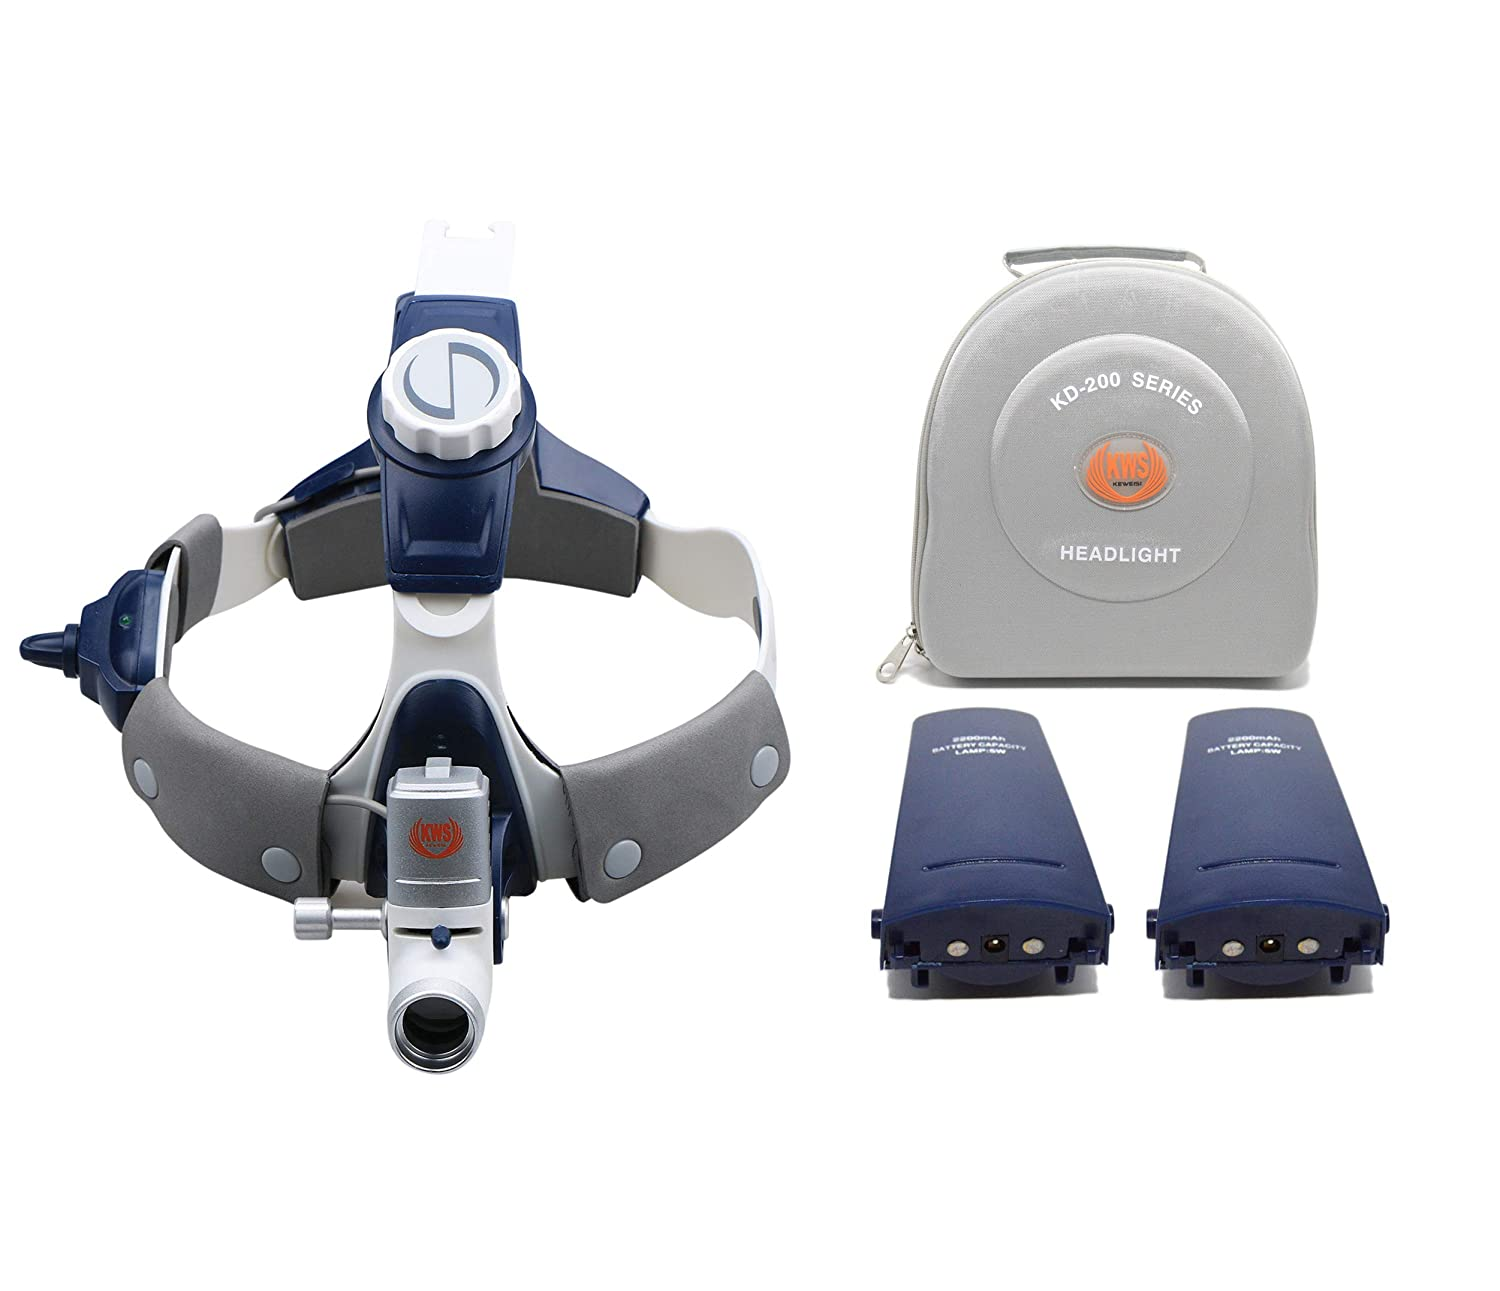 APHRODITE 5W LED Surgical Head Light Medical All-in-One Headlight Lamp Headband KD-202A-7B